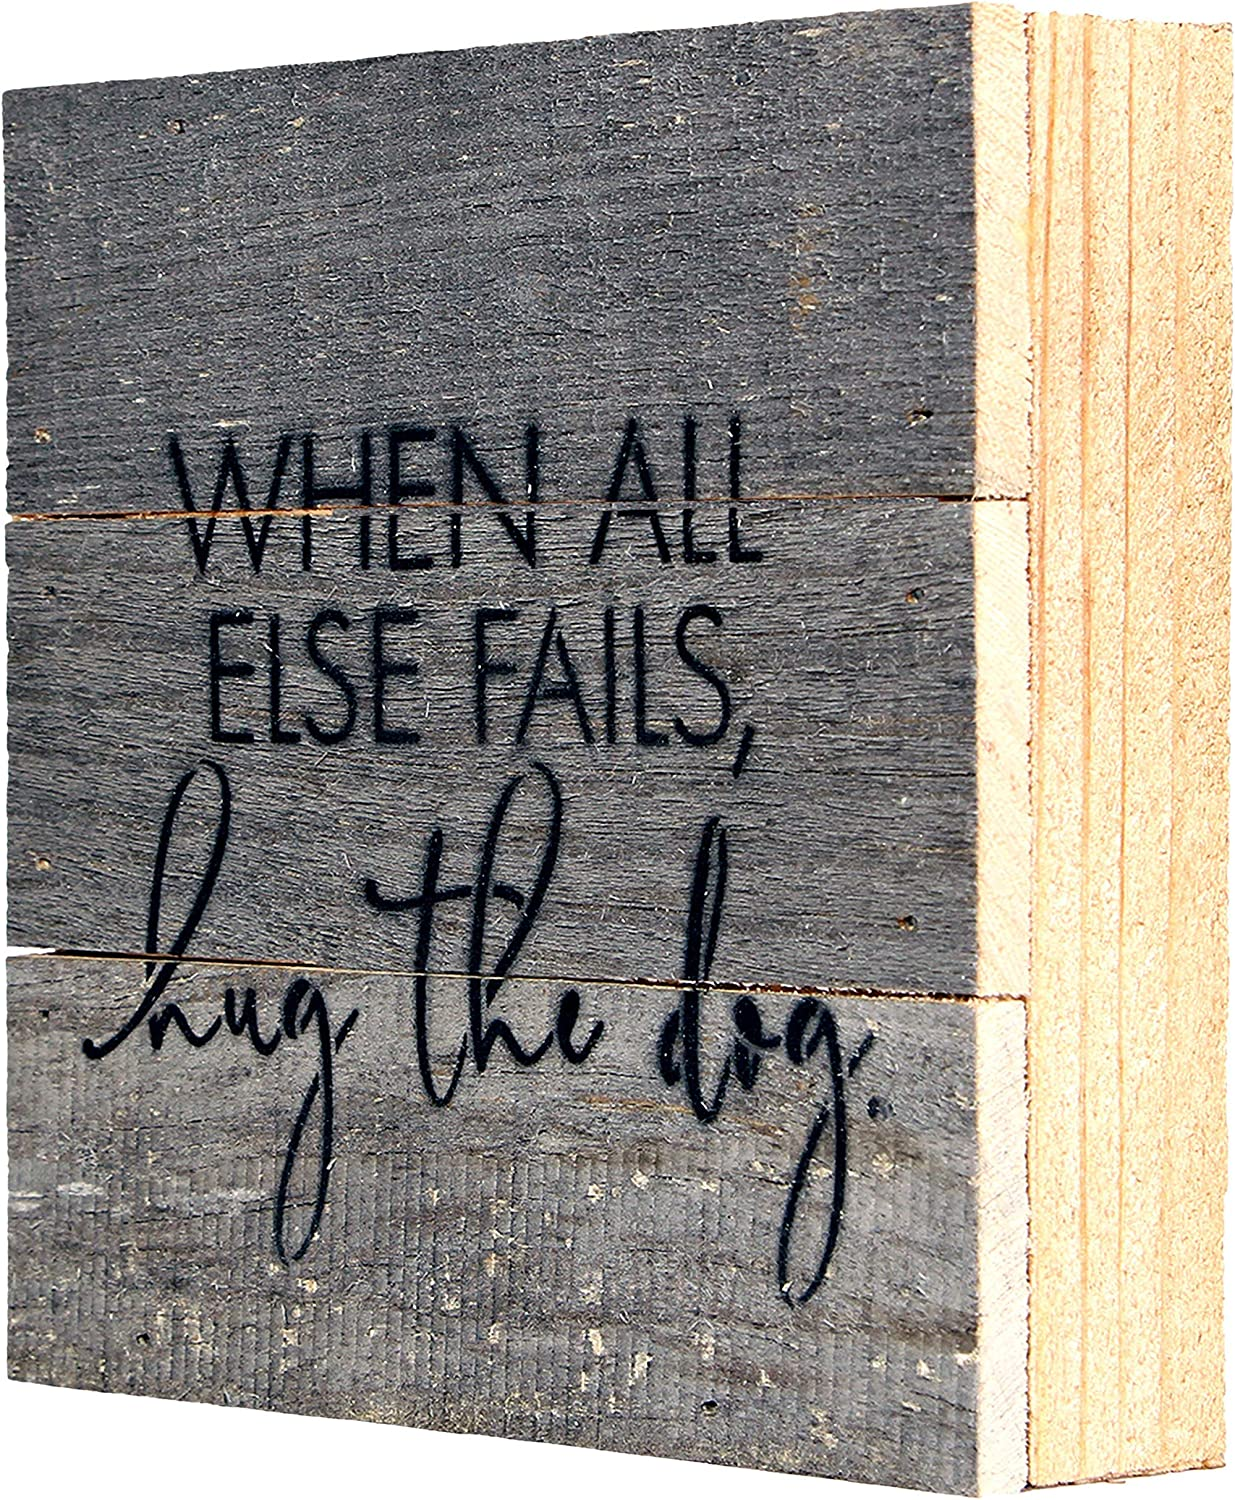 When All Else Fails Hug the Dog Box Signs for Home Decor, Farmhouse Cute Wooden Signs with Quotes, Funny Knick Knacks Home Decor, Wooden Box Signs with Quotes, Rustic Plaques with Sayings USA Handmade